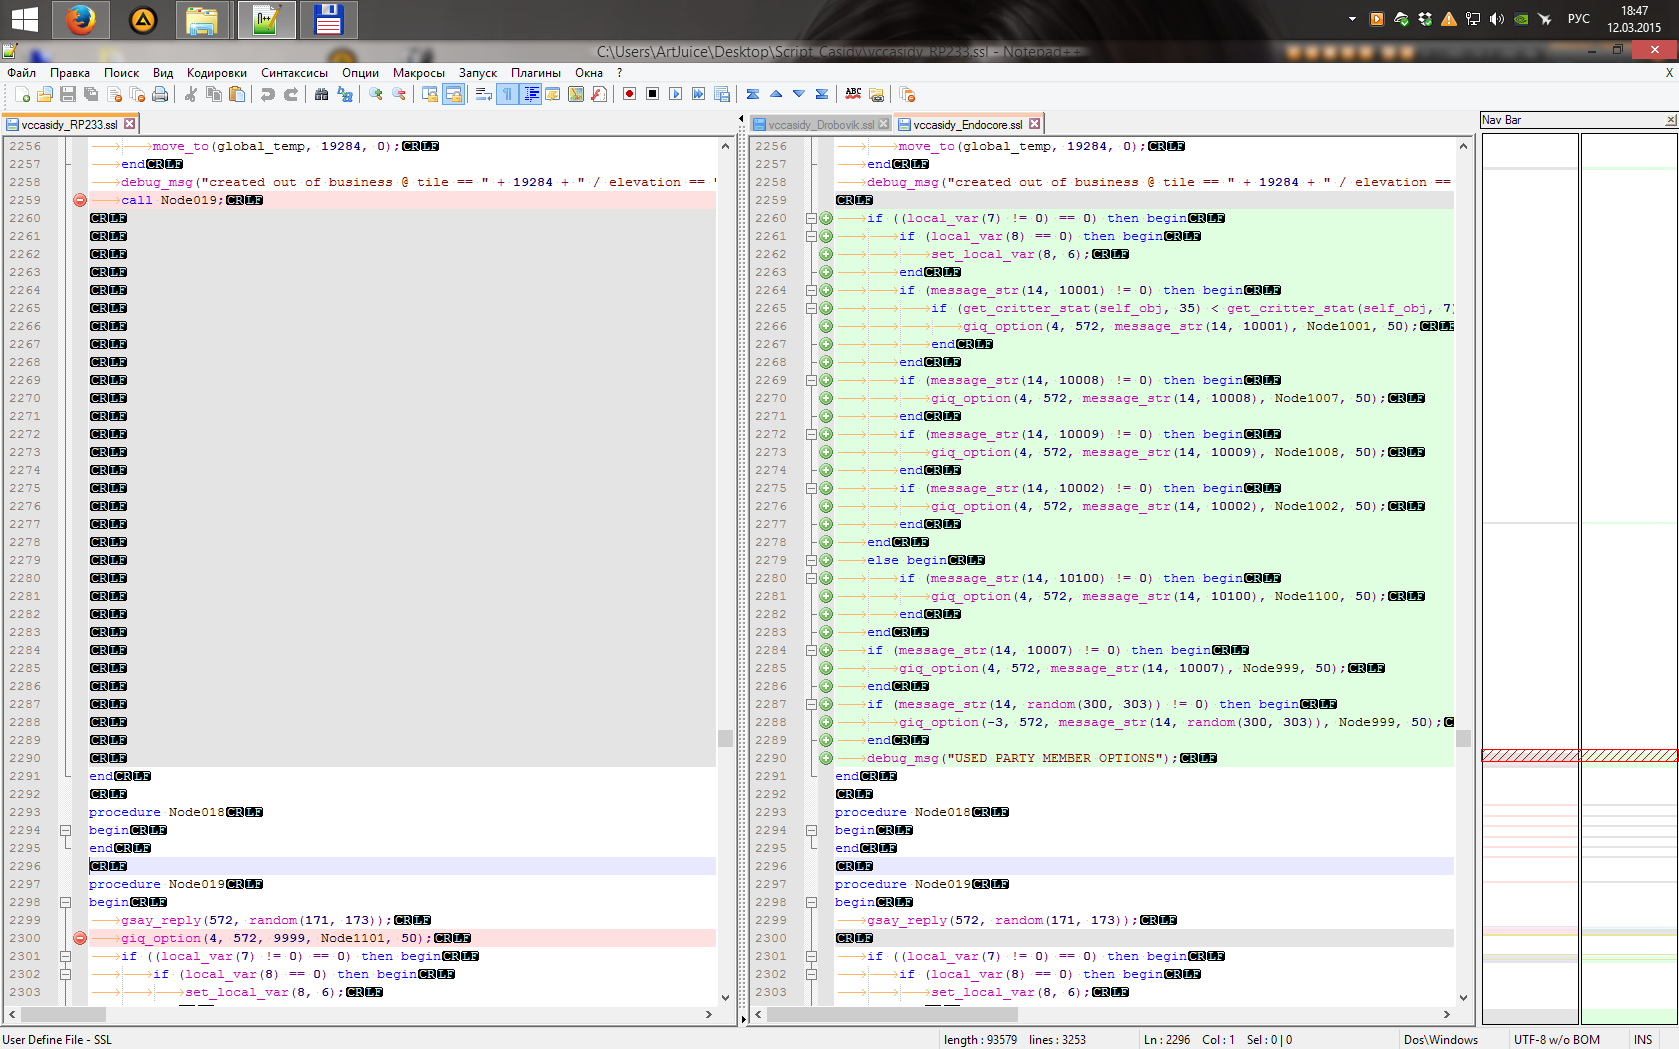 2015-03-12 18-47-17 C  Users ArtJuice Desktop Script_Casidy vccasidy_RP233.ssl - Notepad++.png